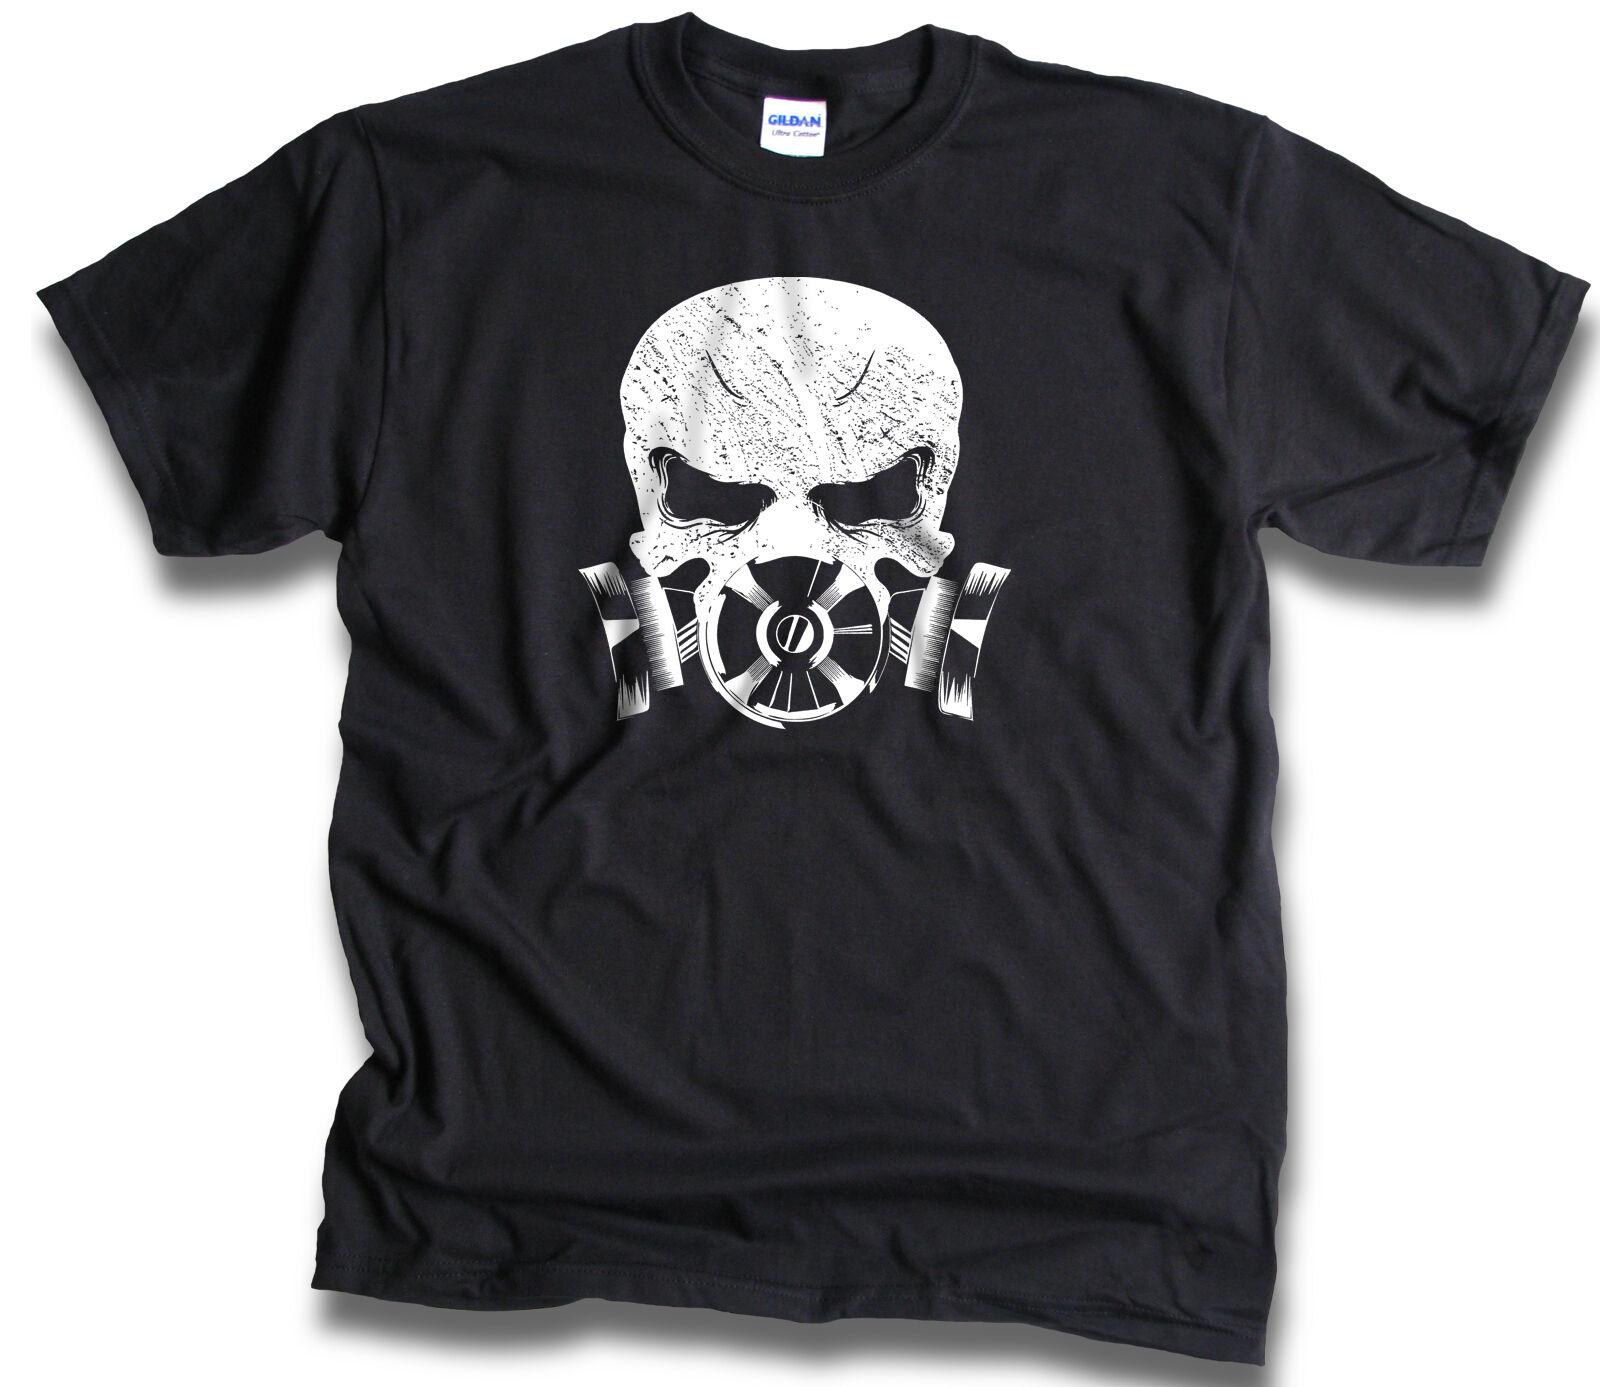 Tops & Tees Summer Fashion Men Cotton T Shirts Gas Mask Skull Man Round Neck Tops Black Size S-3xl Women Tshirt Back To Search Resultsmen's Clothing